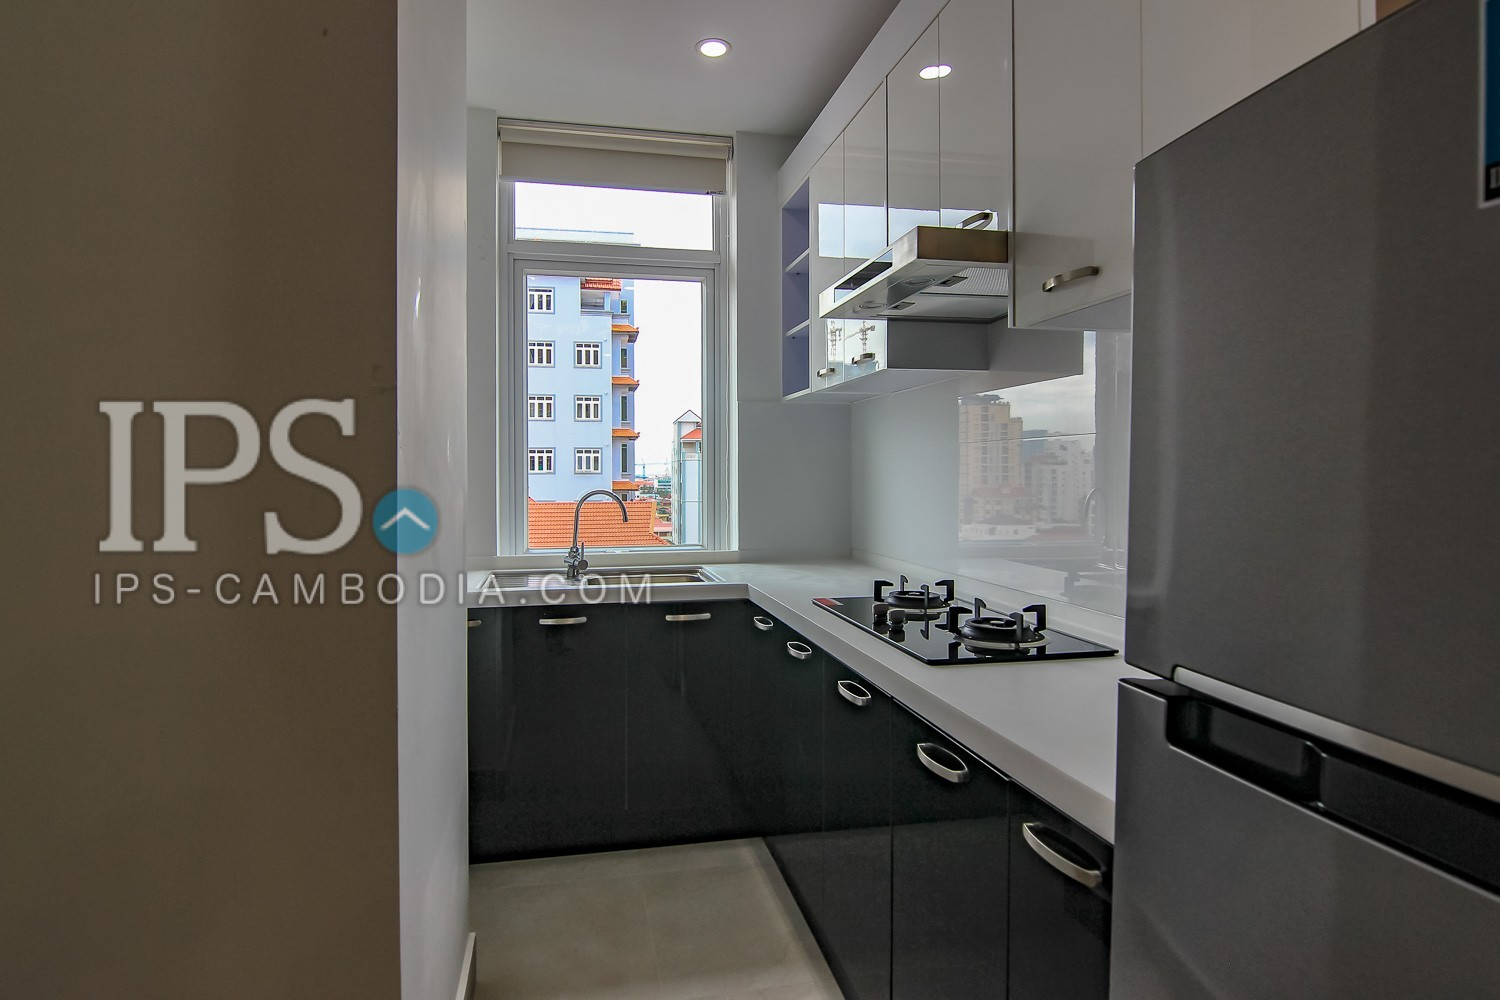 2 Bedrooms Apartment for Rent in Toul Tumpong